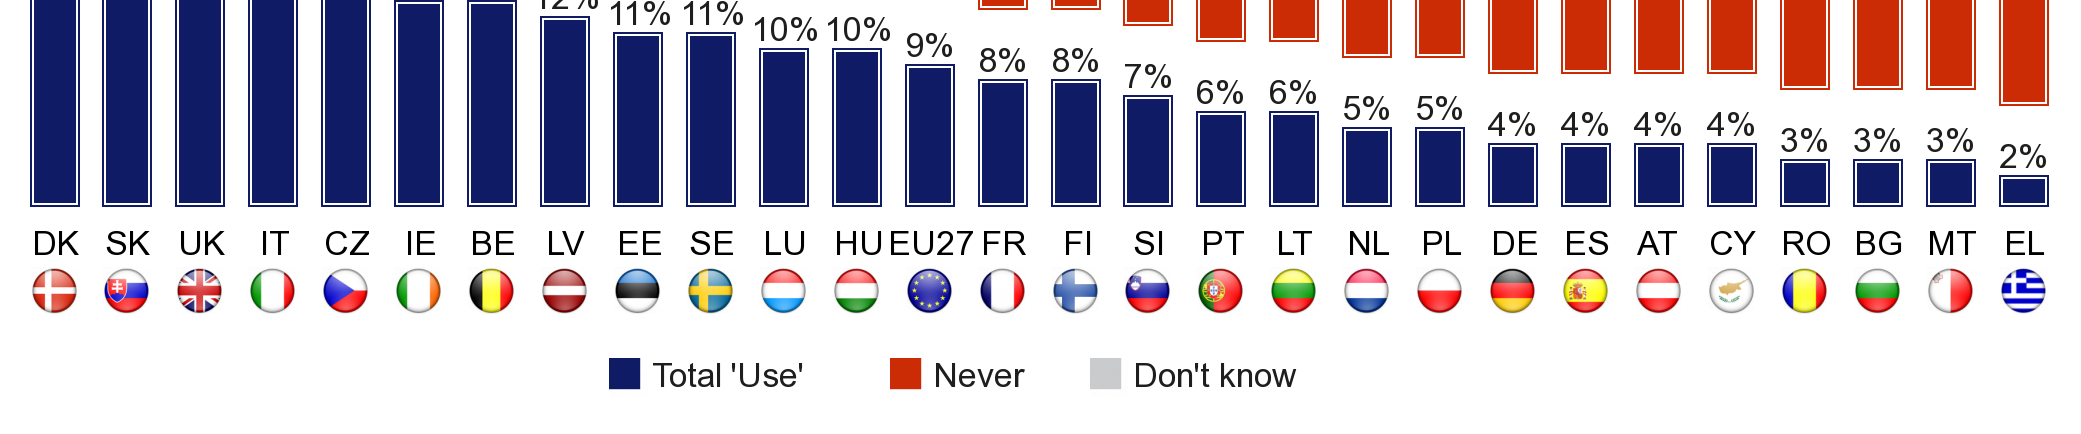 Pay per view or listen is most common in Denmark (24%), followed by Slovakia (20%).